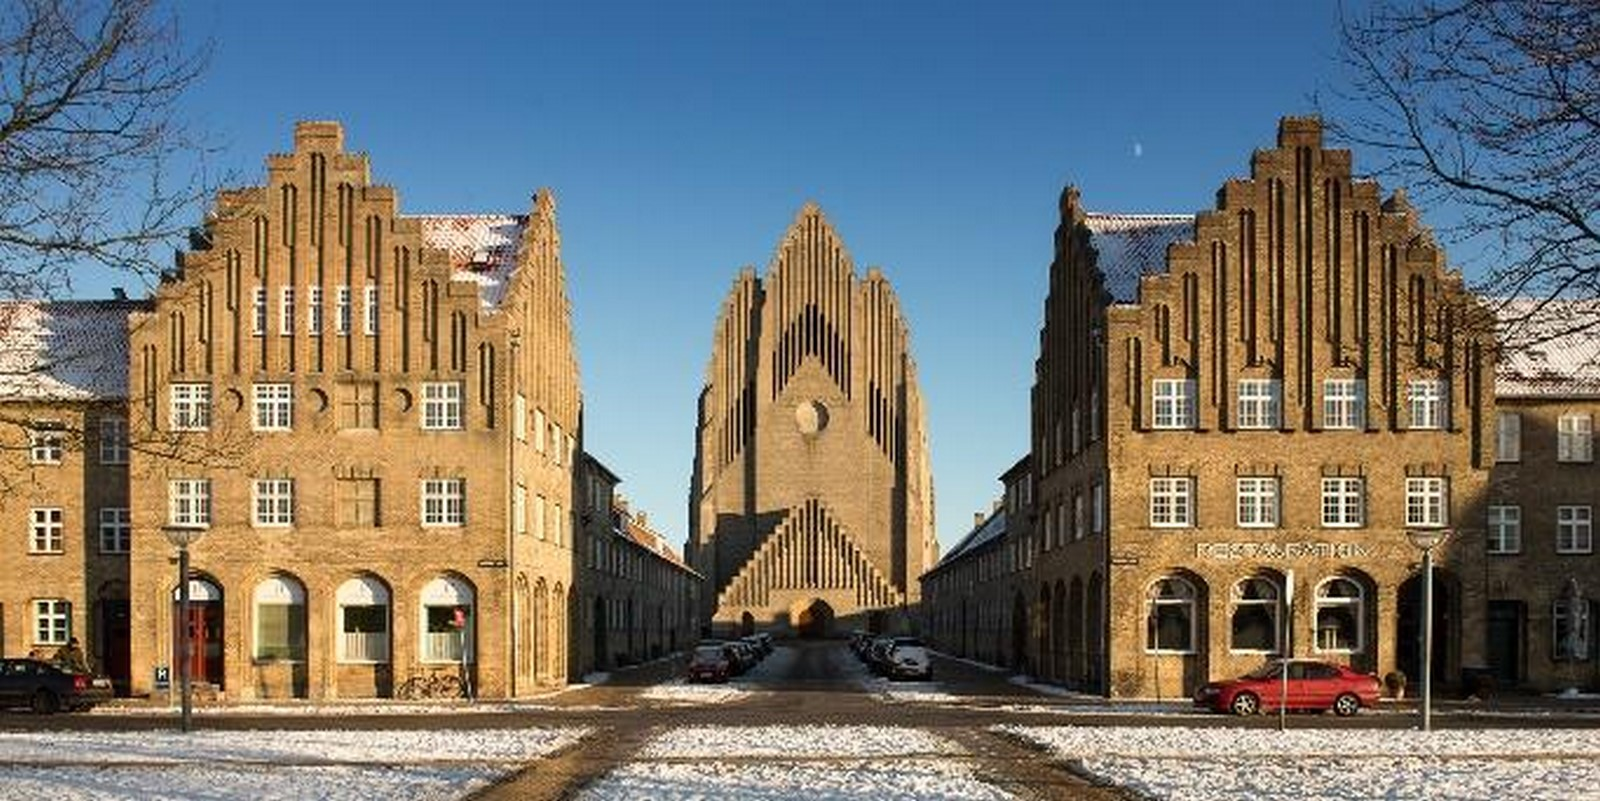 Grundtvig's Church, Denmark - Sheet1